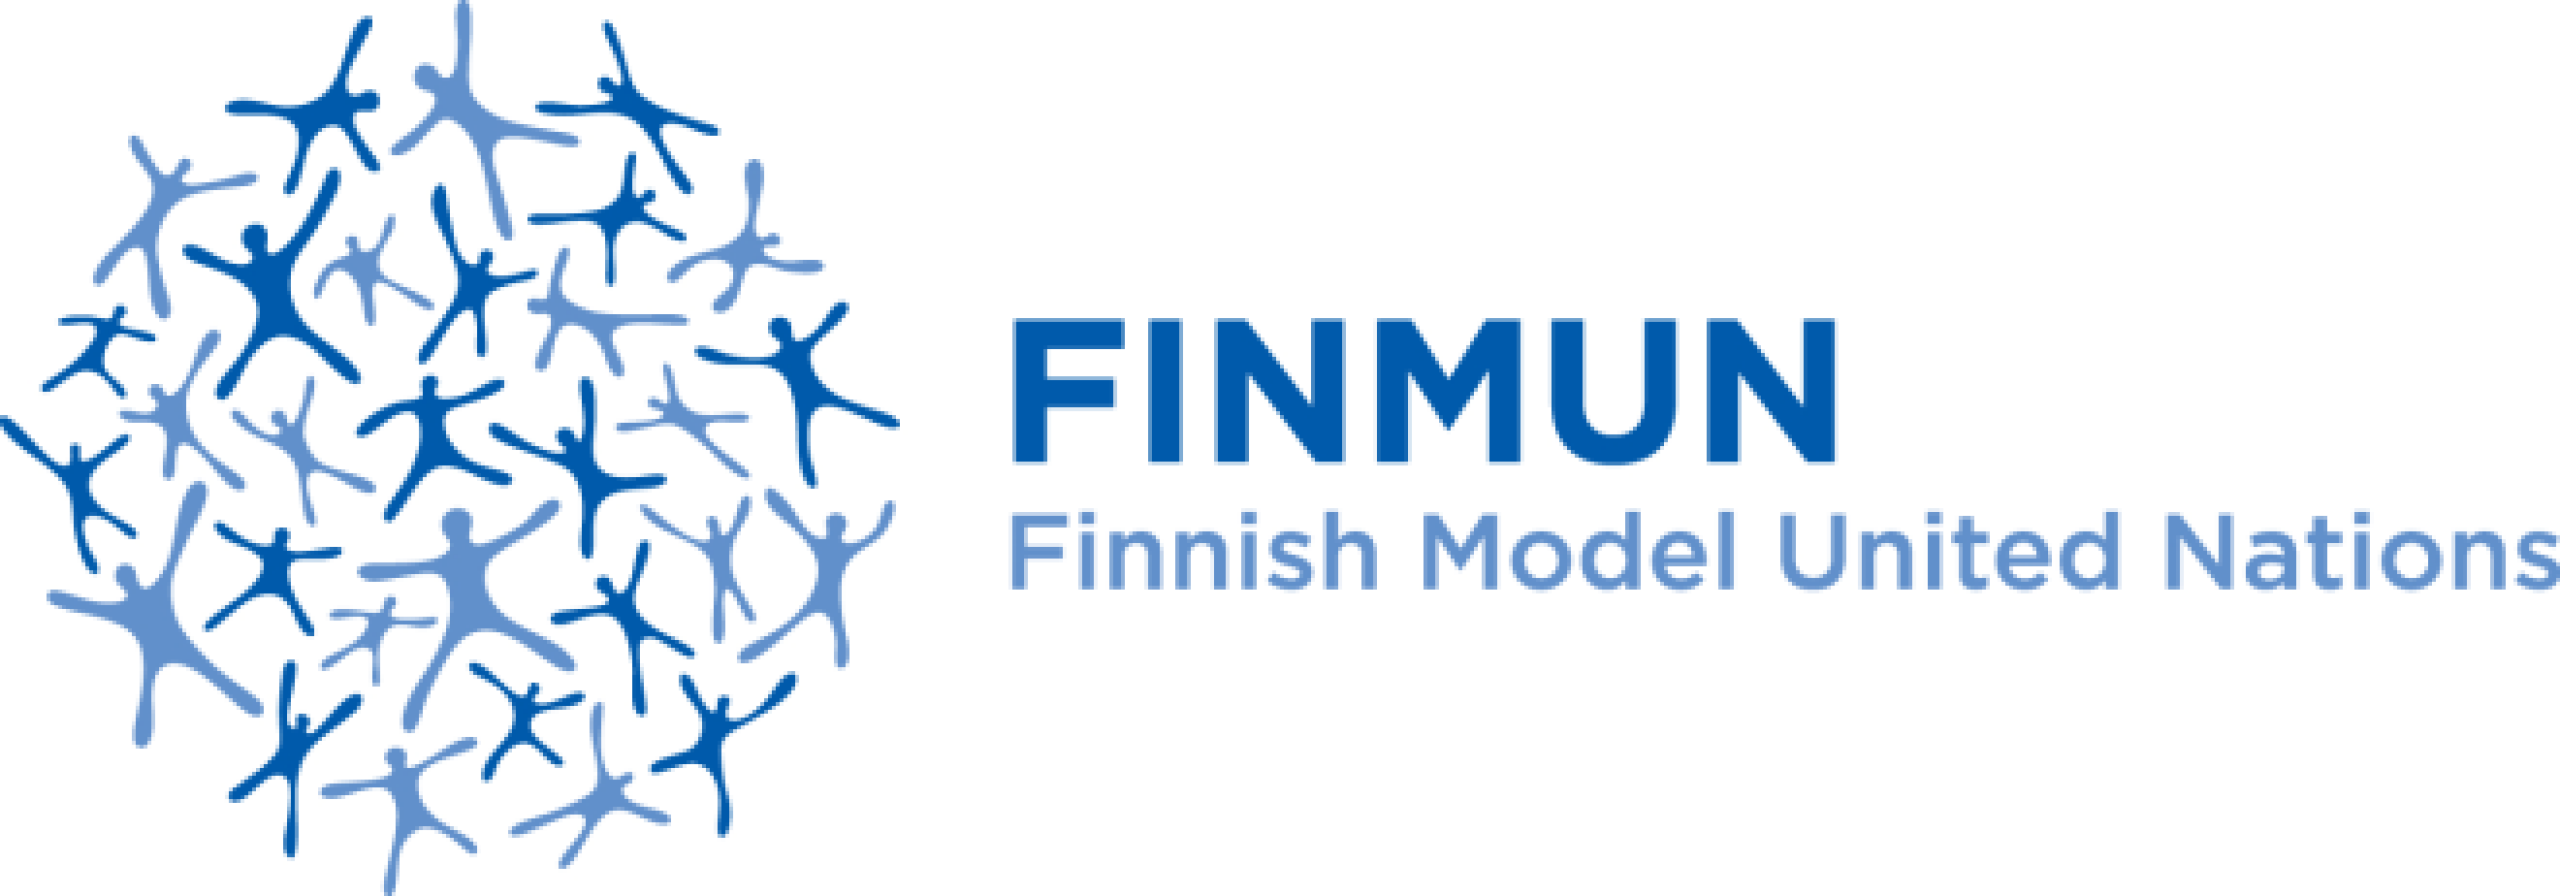 Finnish Model United Nations